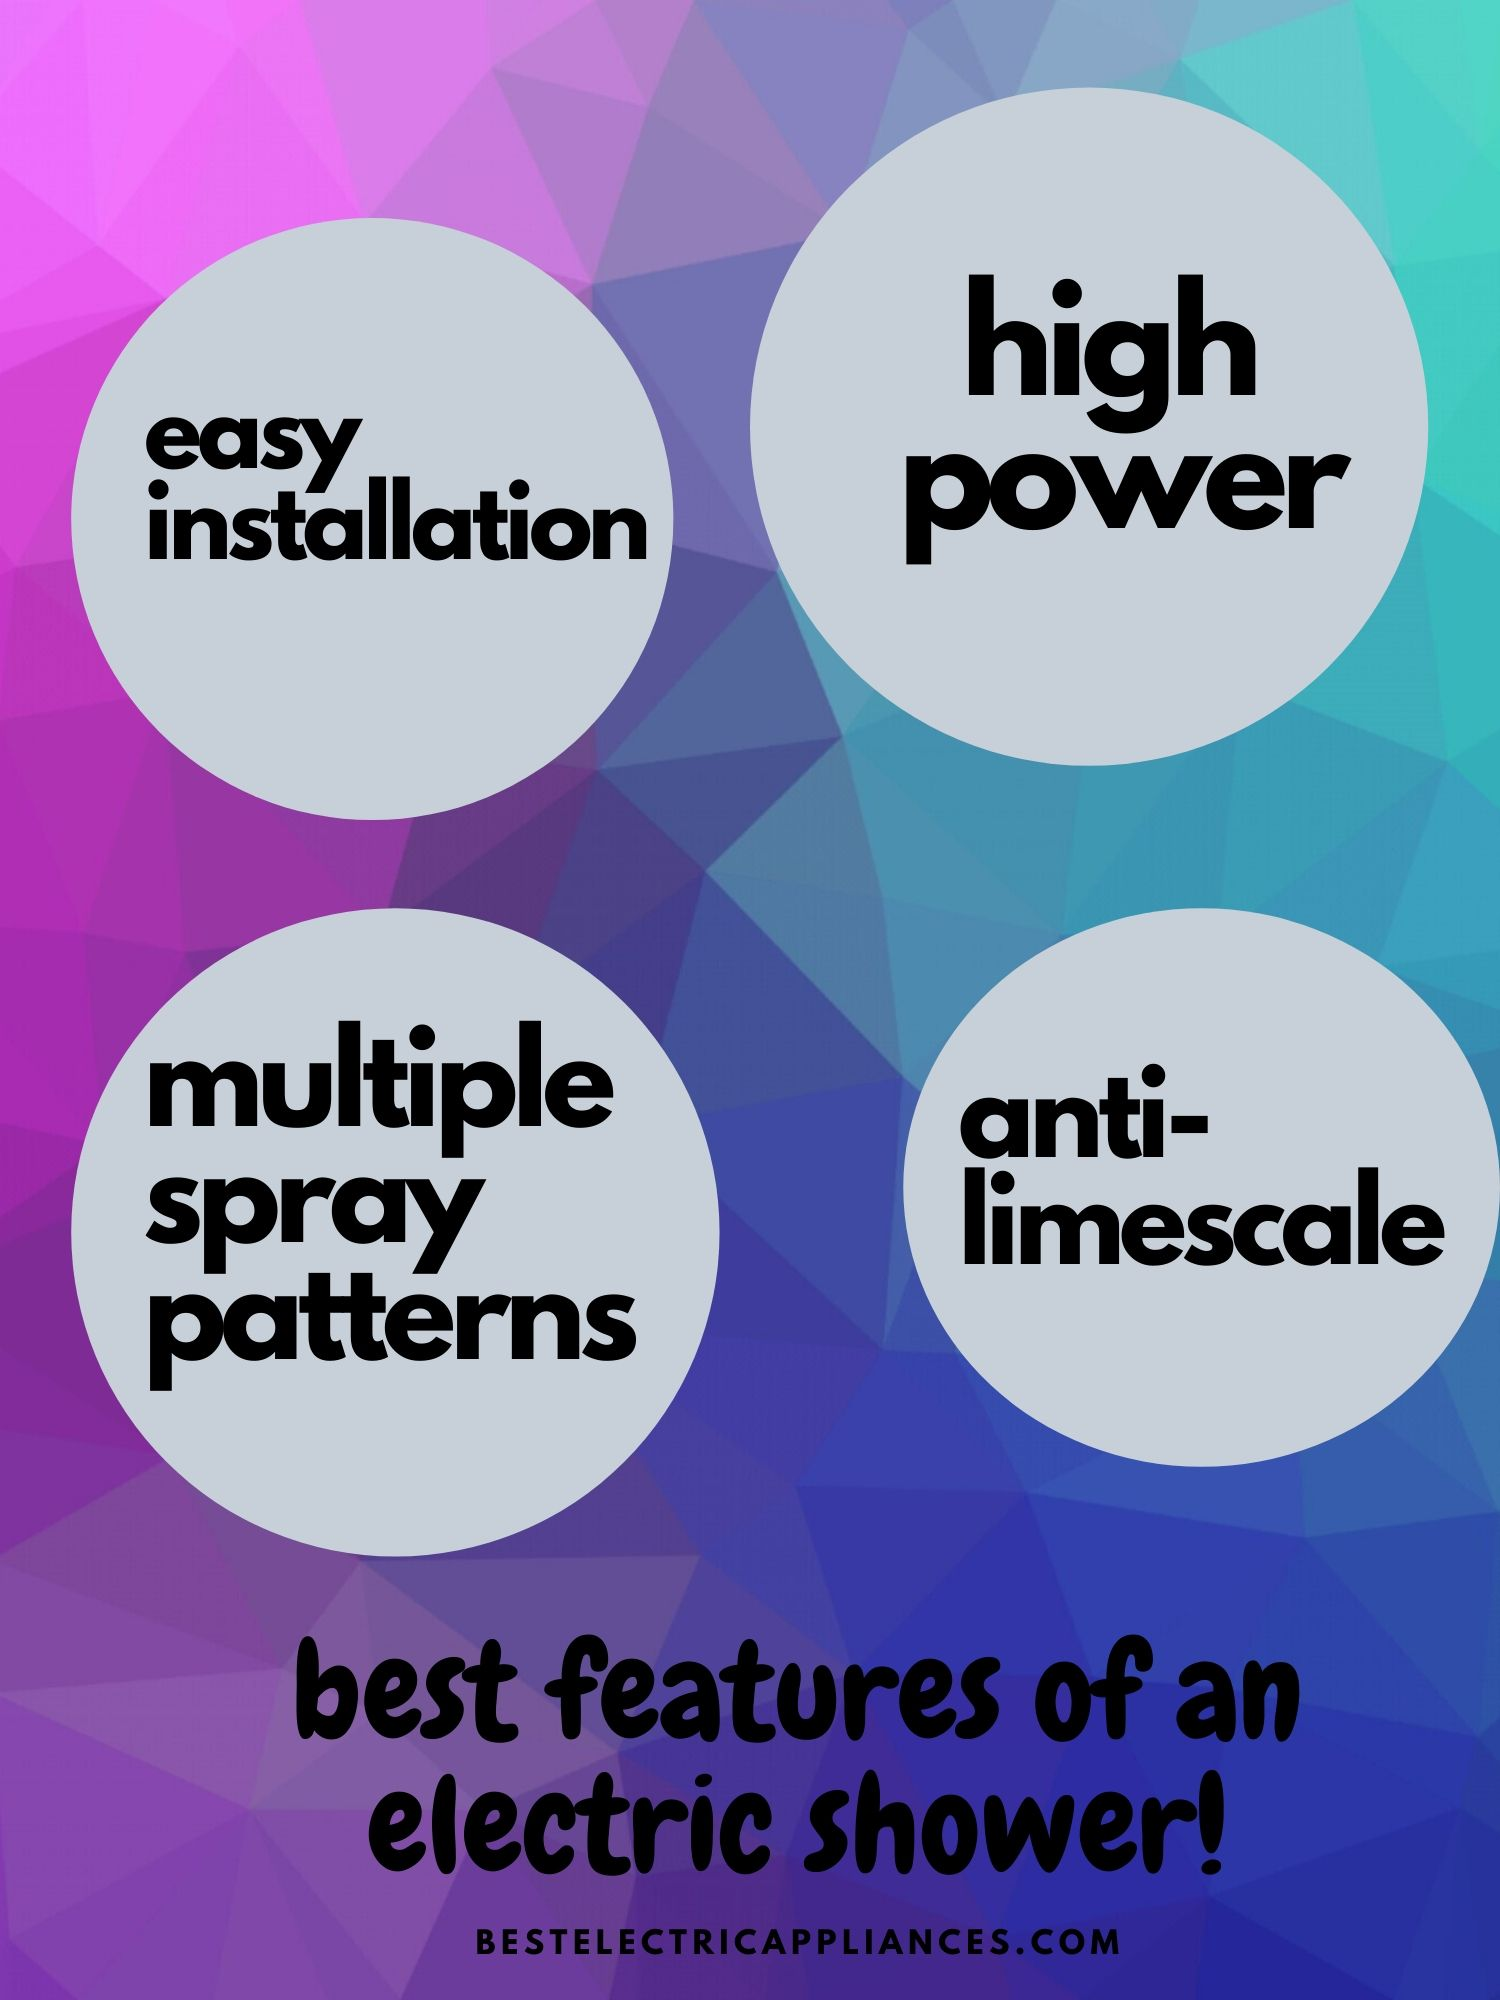 Best features of an electric showers